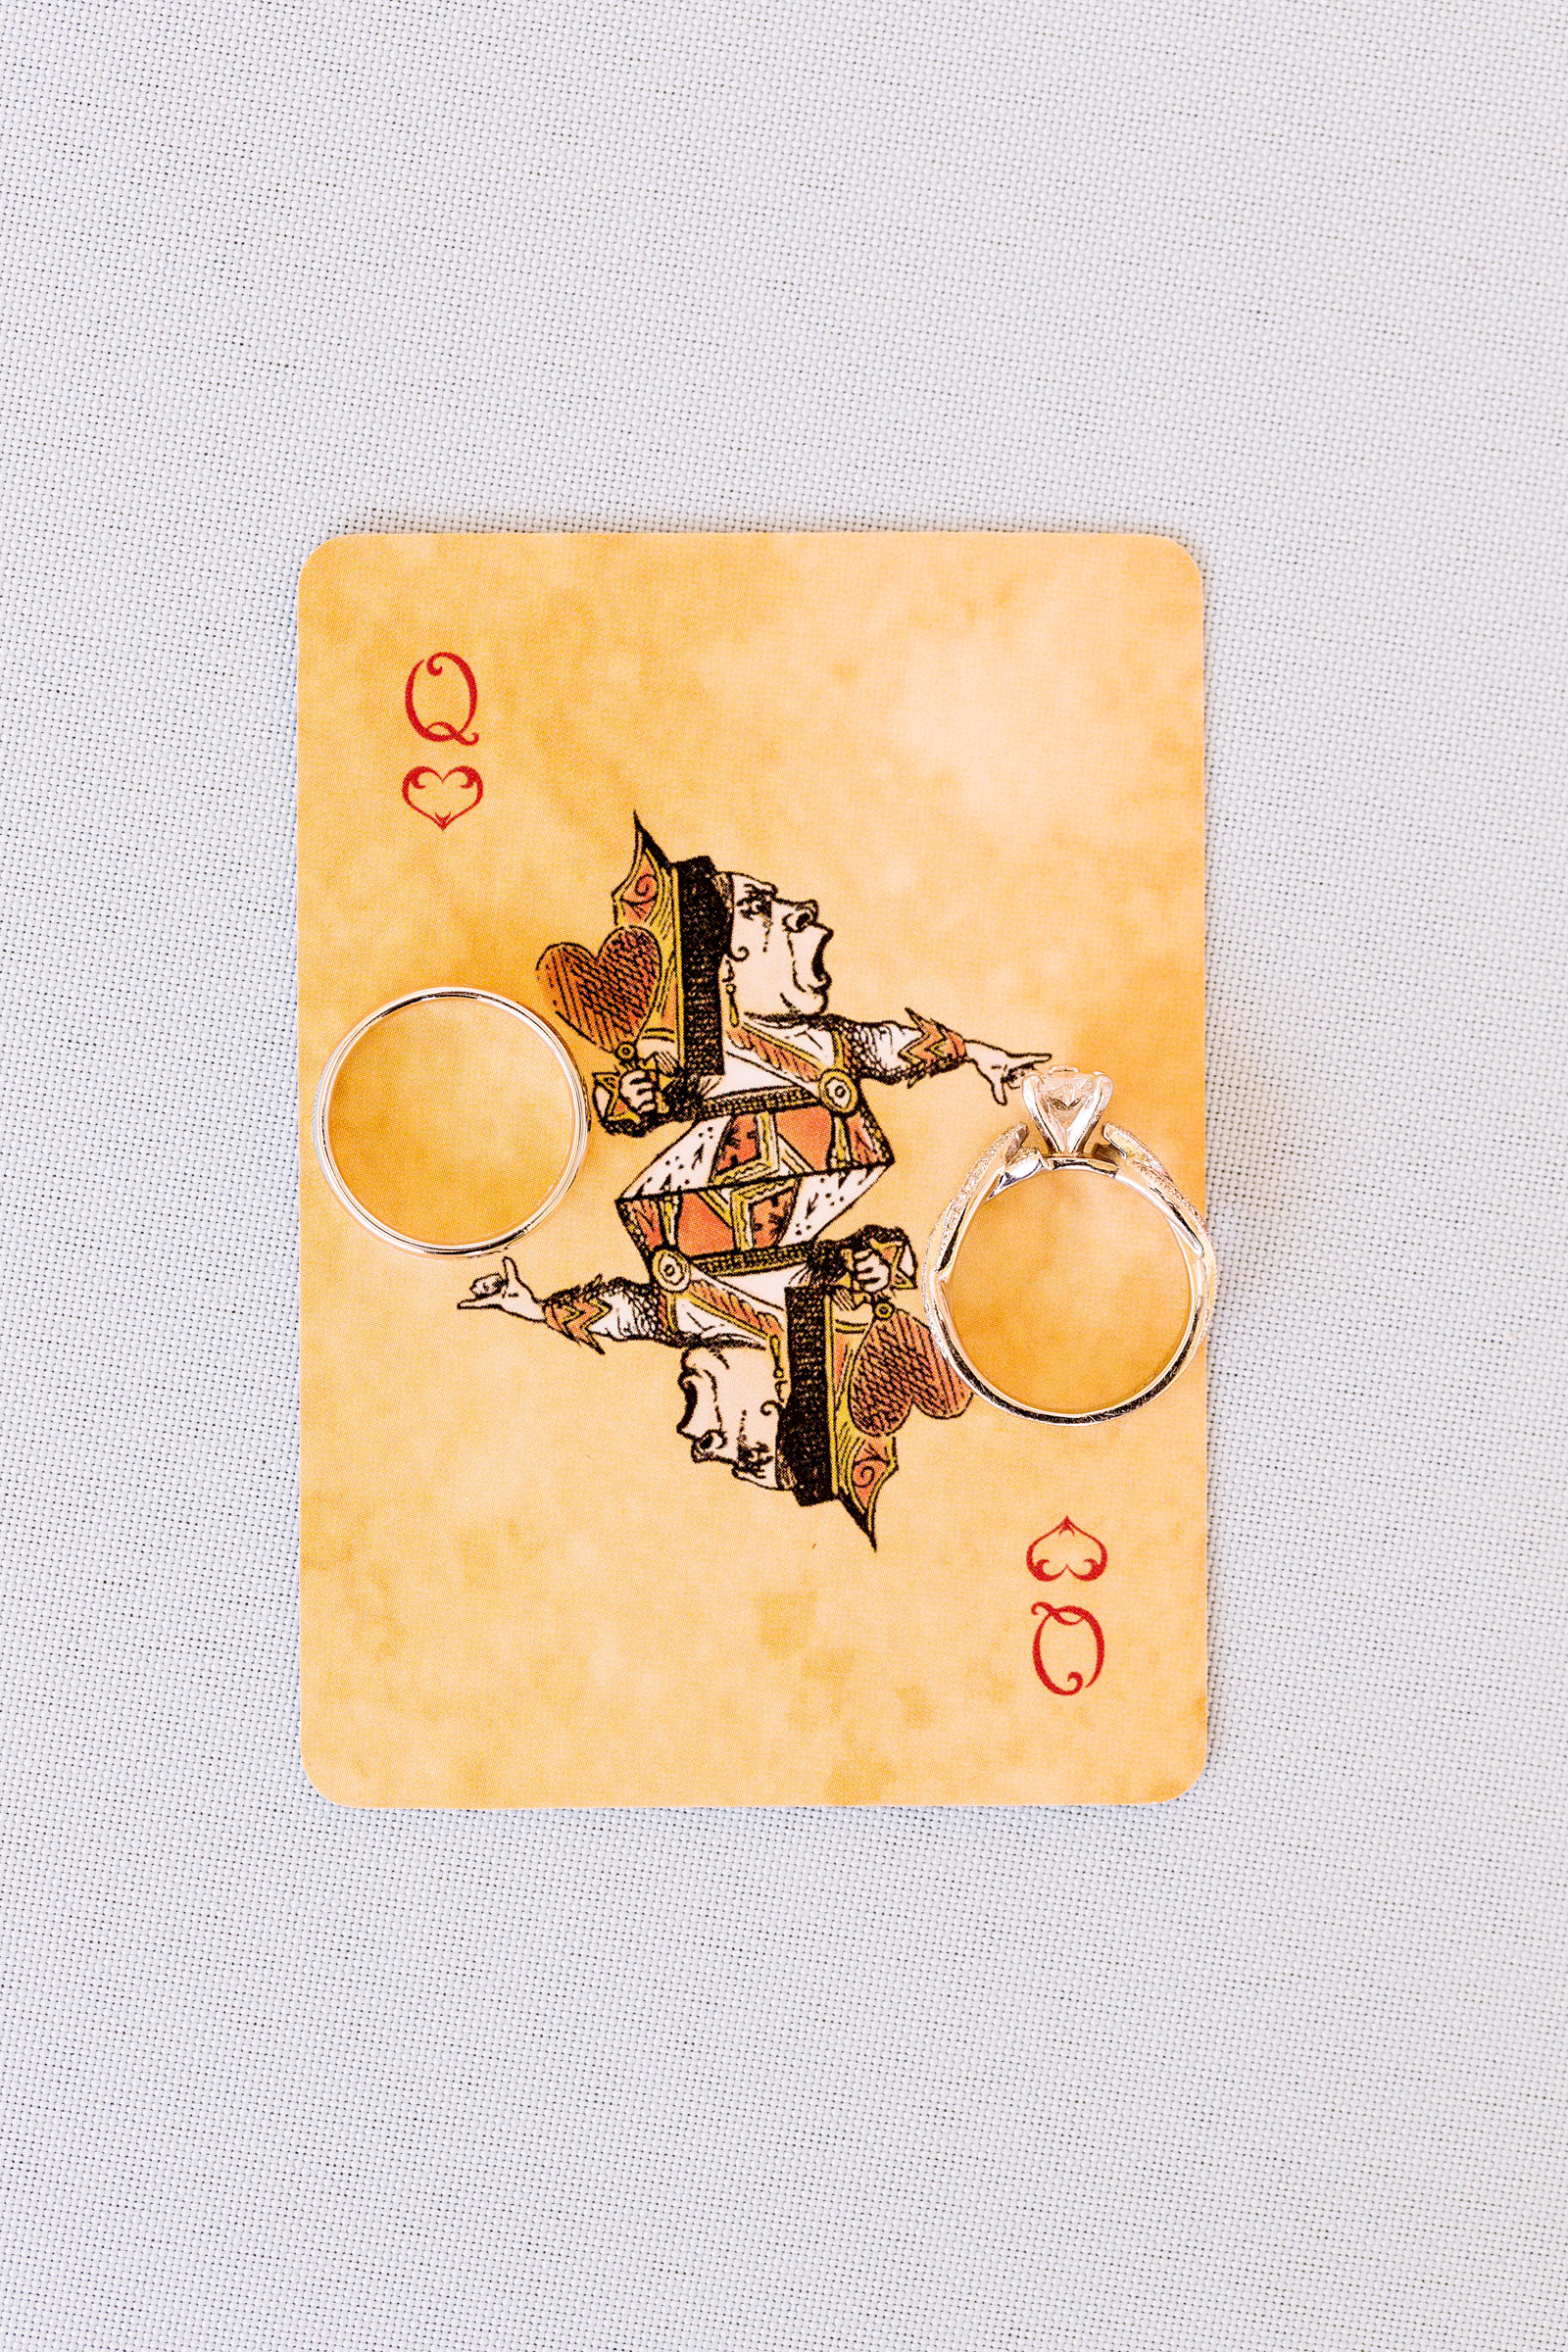 rings-on-queen-of-hearts-playing-card-procopio-photography